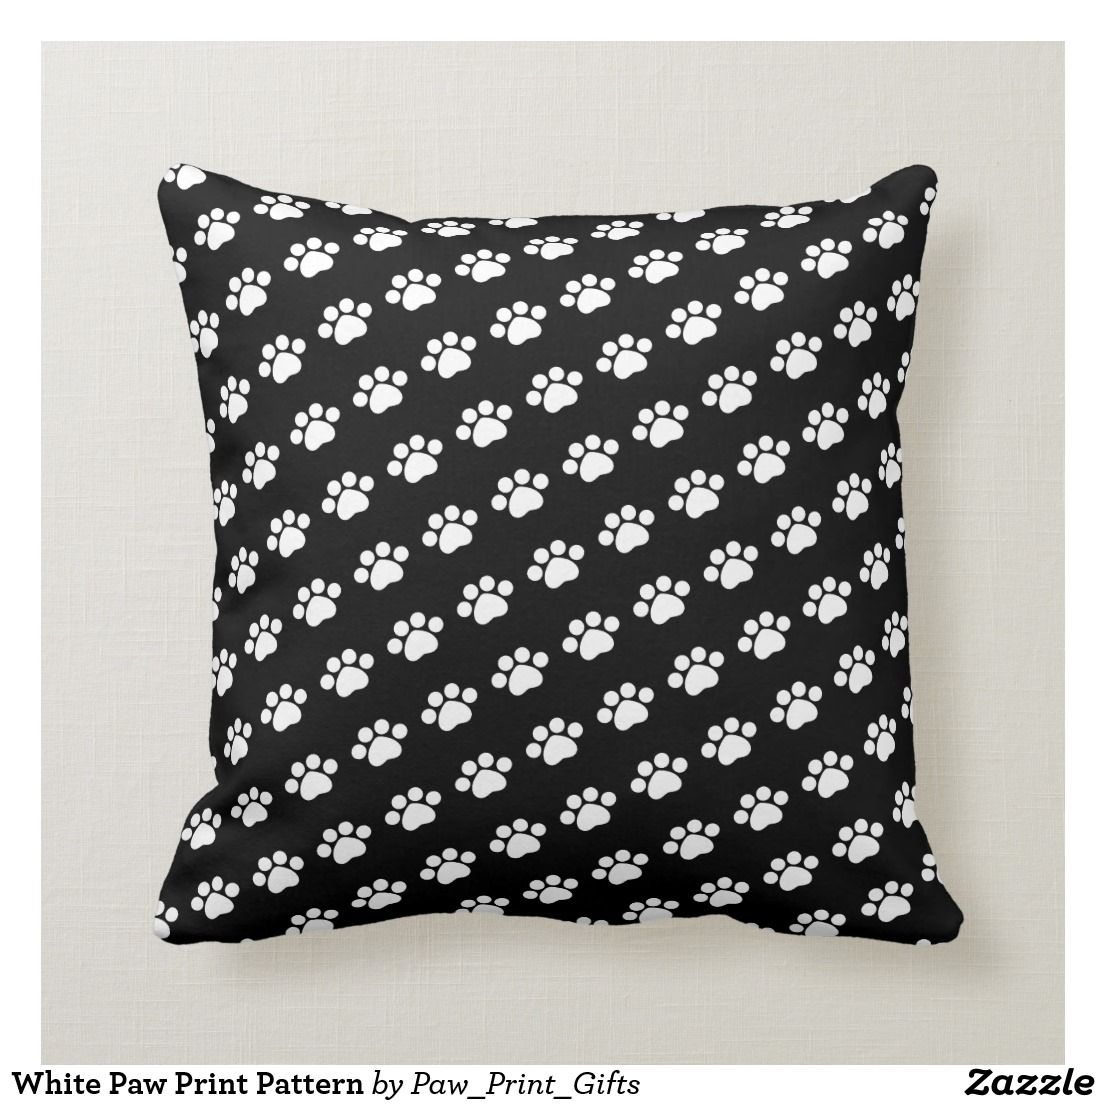 White Paw Print Pattern Throw Pillow {affiliate link} This